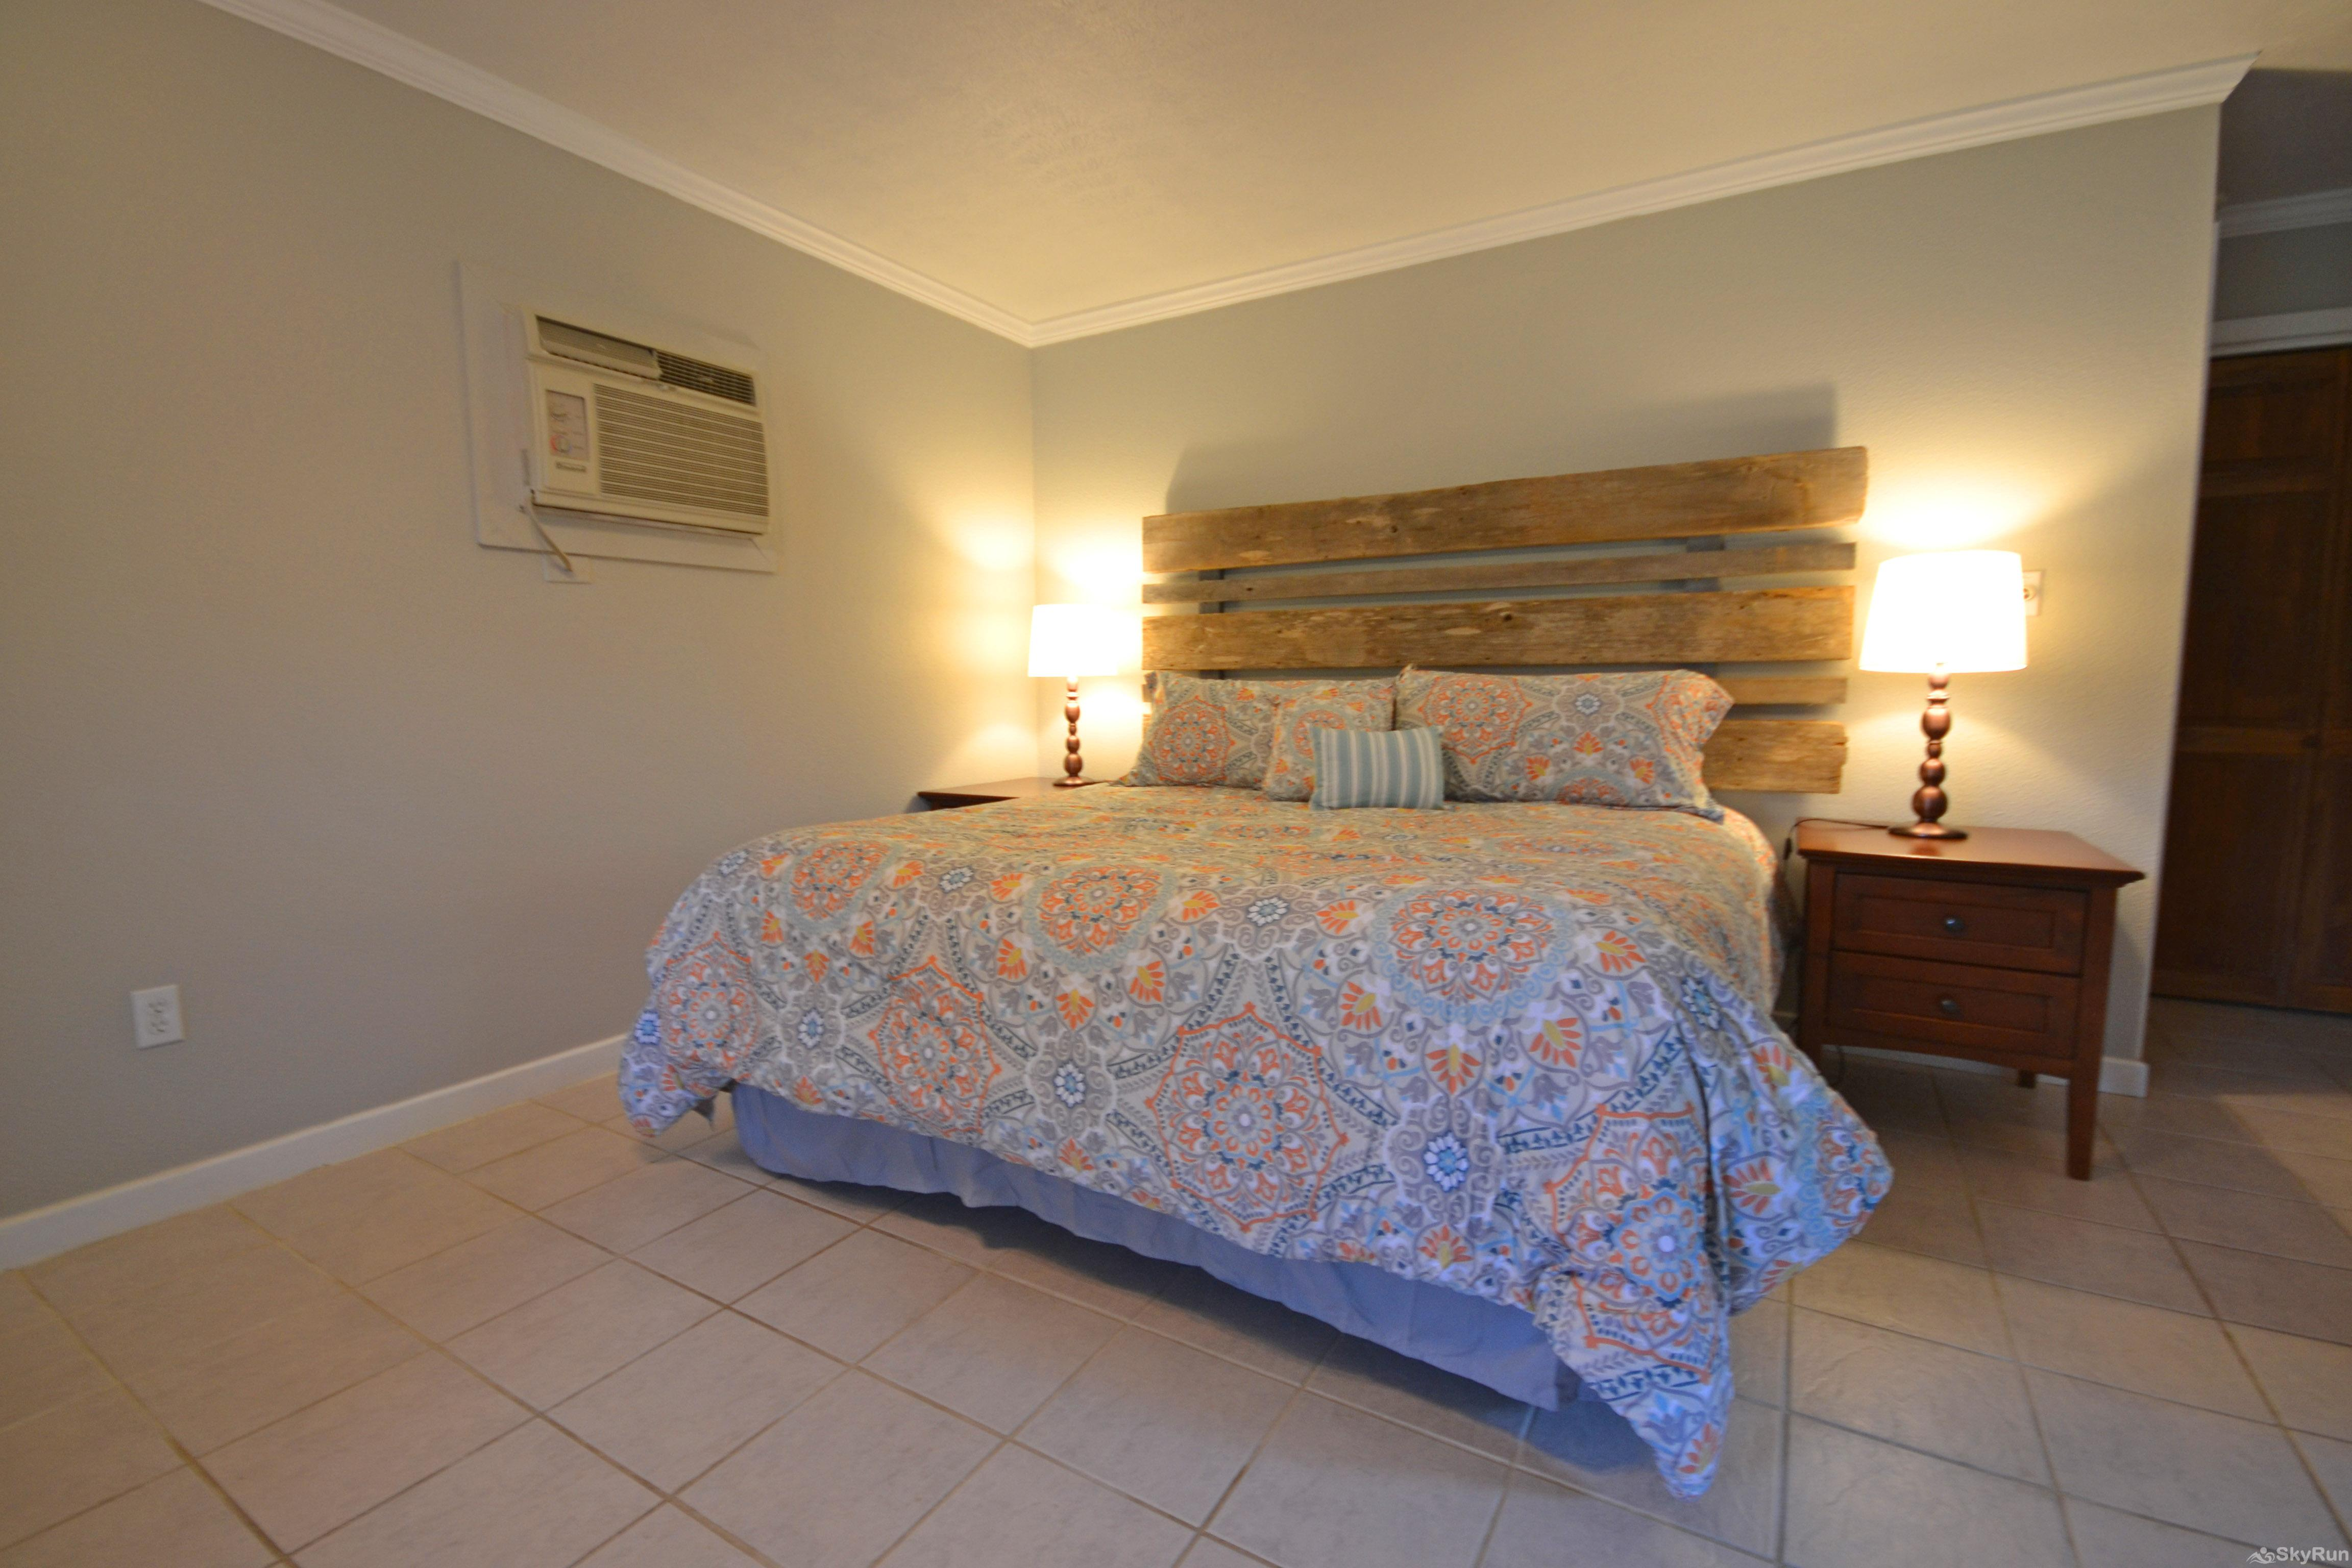 MAVERICK'S RIVER HAUS & GUEST HAUS Comfy King Bed in Guest Studio